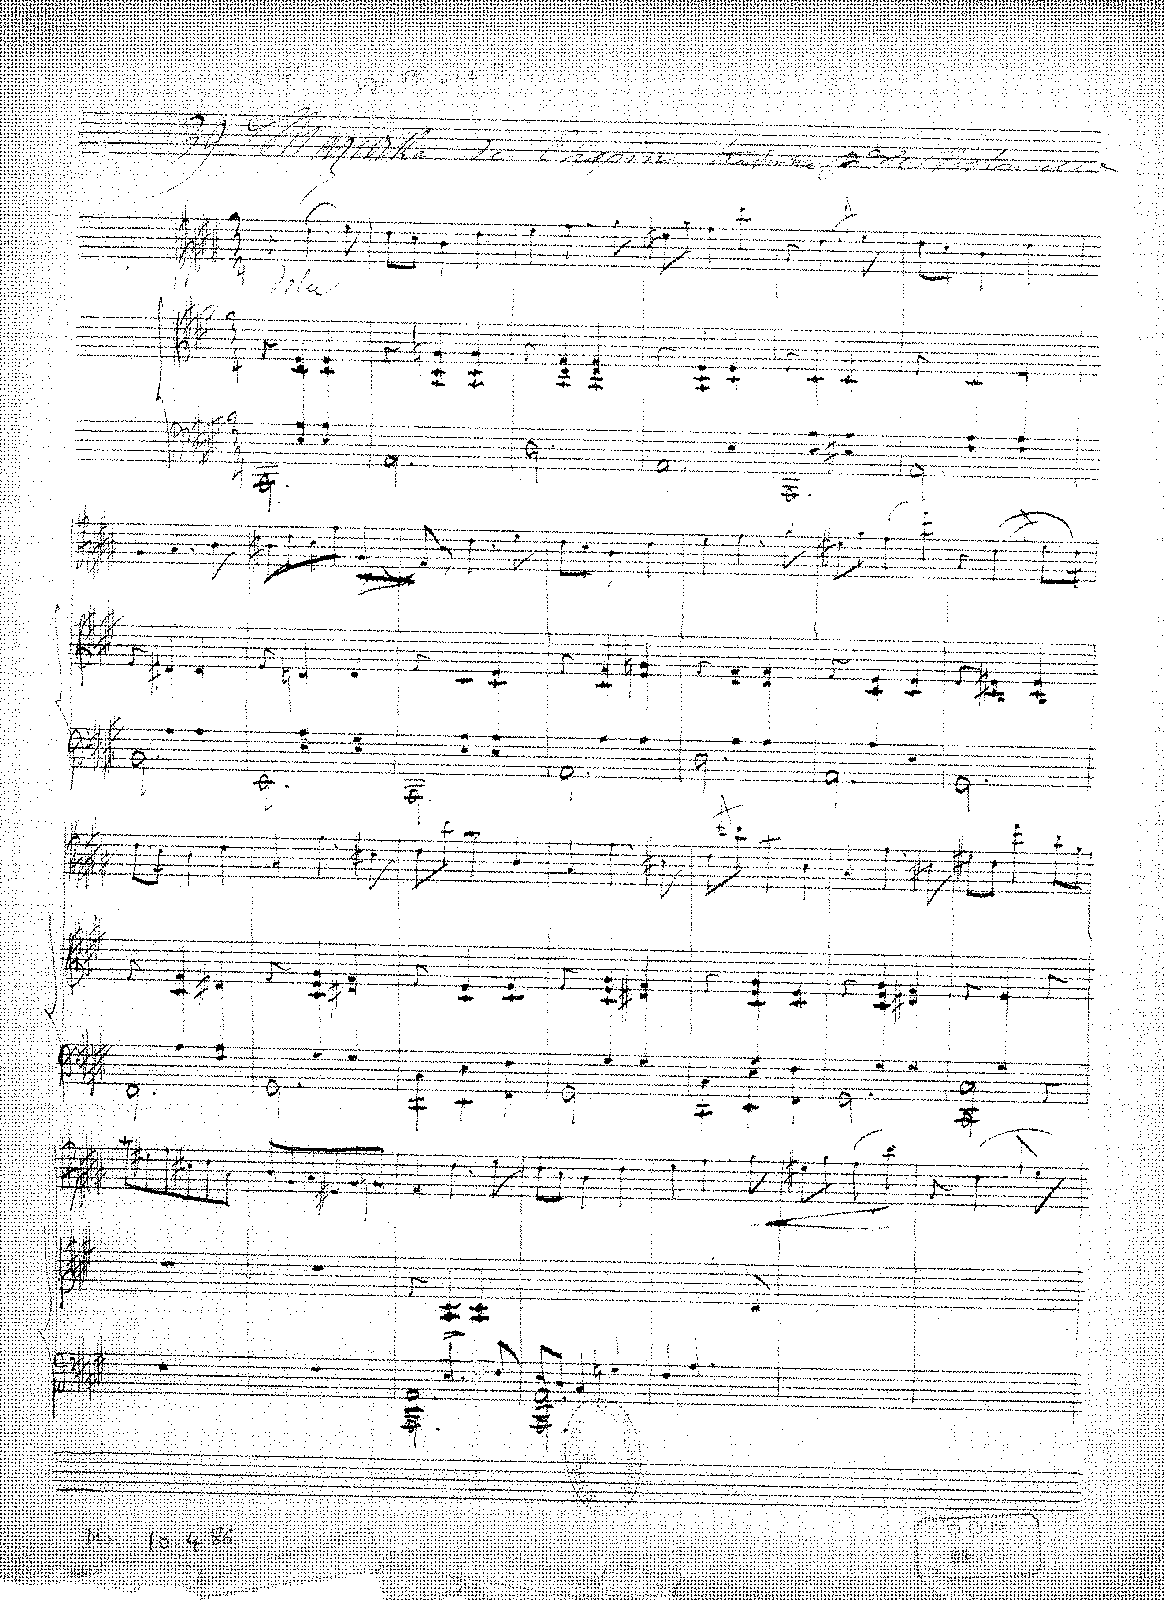 PMLP02279-Chopin - Mazurka - Op59 No2 (Franchomme) for cello and piano manuscript.pdf